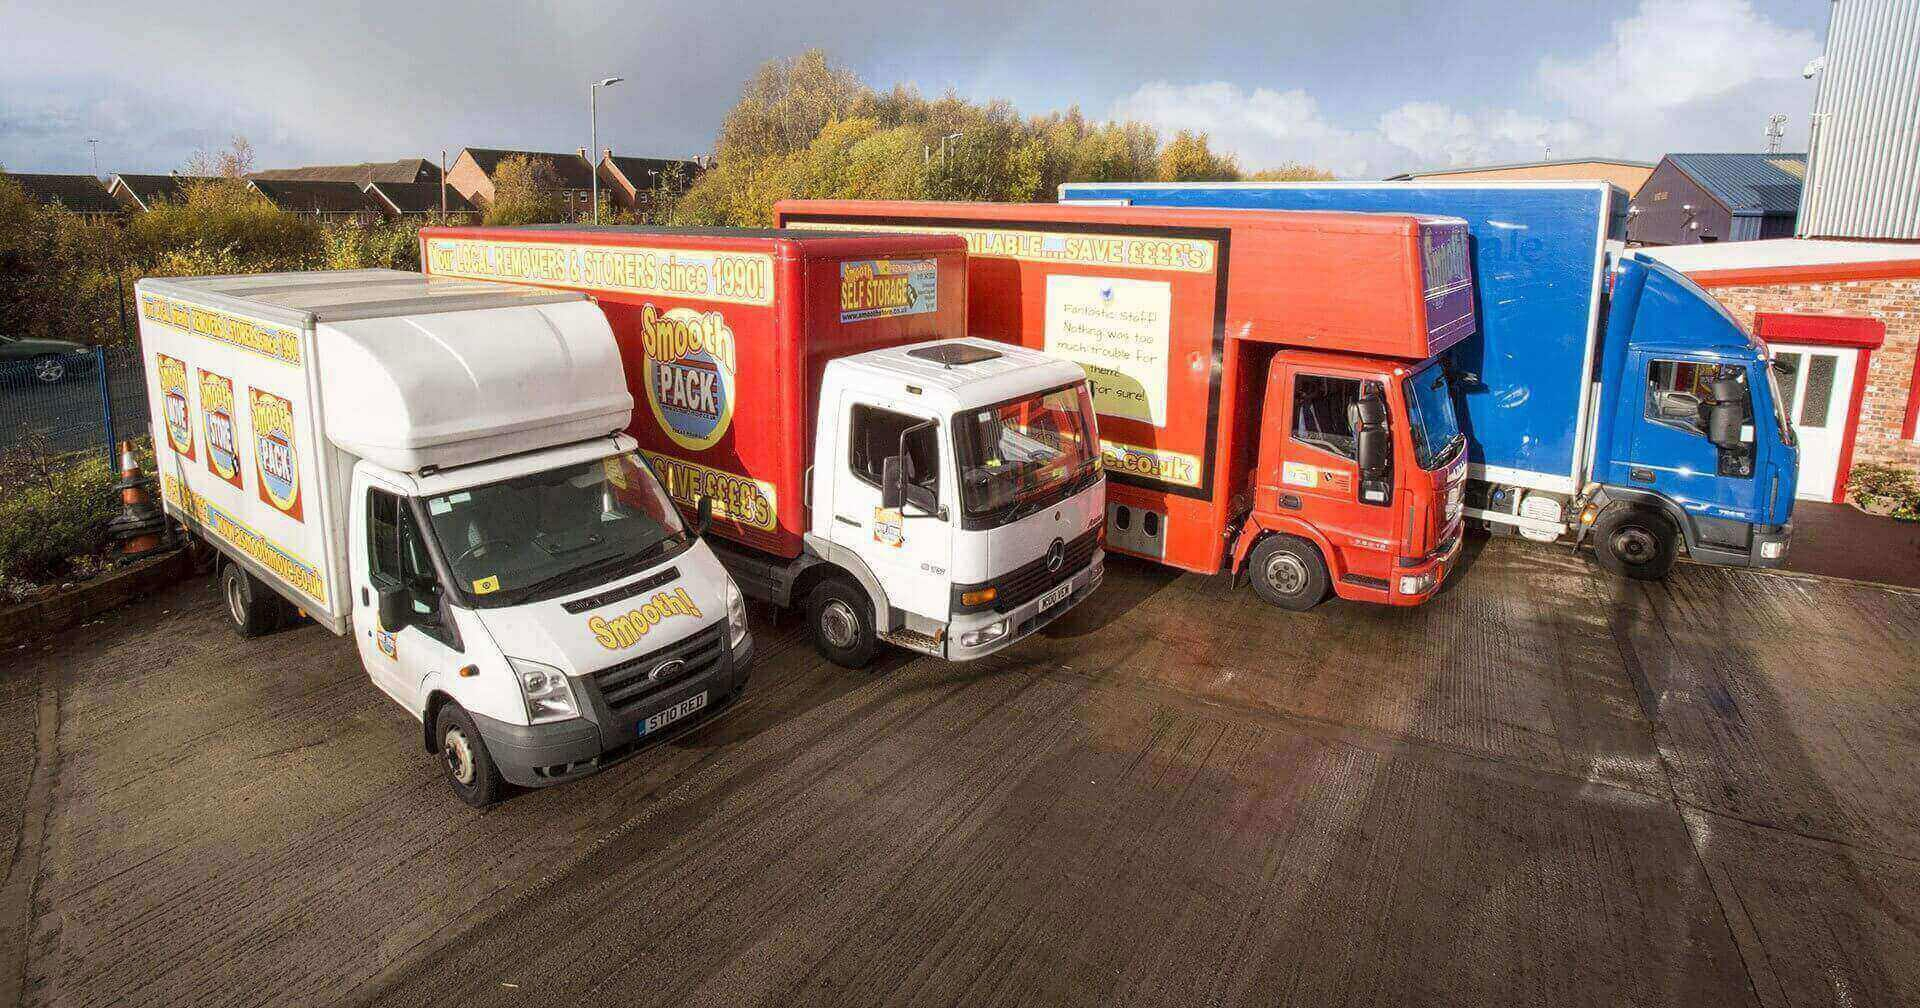 A Smooth Move & Store (@wirralmovers) Cover Image